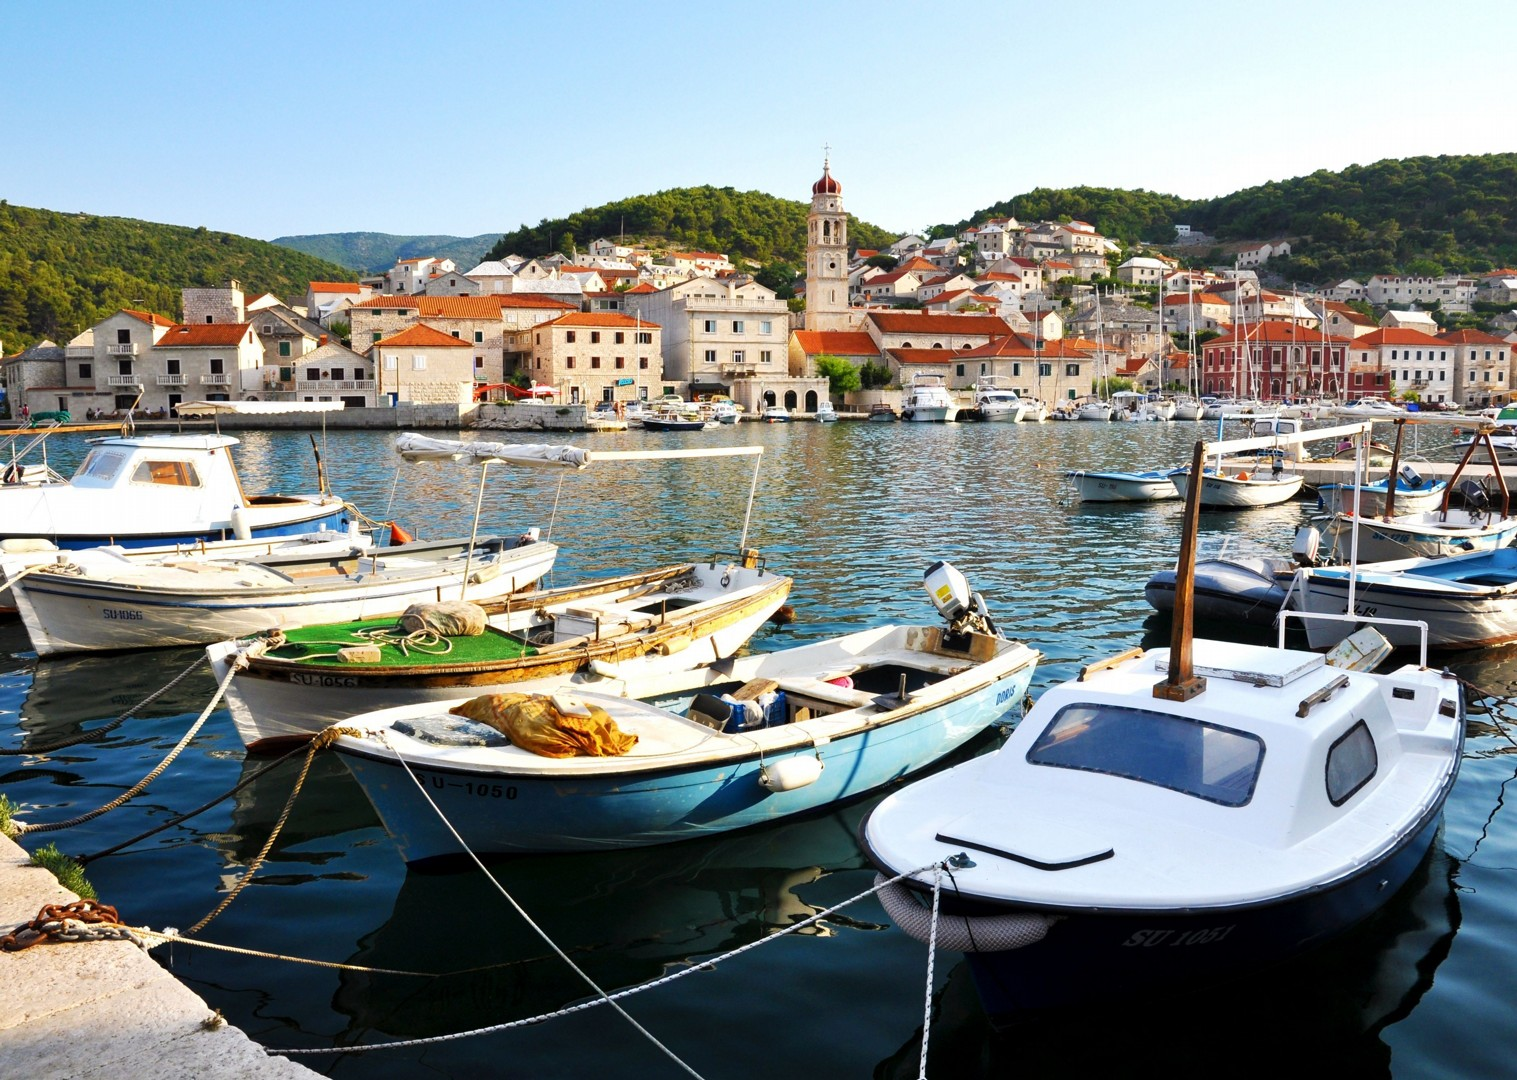 leisure-cycling-holiday-yacht-accommodation-croatia-skedaddle.jpg - Croatia - Southern Dalmatia Plus - Bike and Boat Holiday - Leisure Cycling